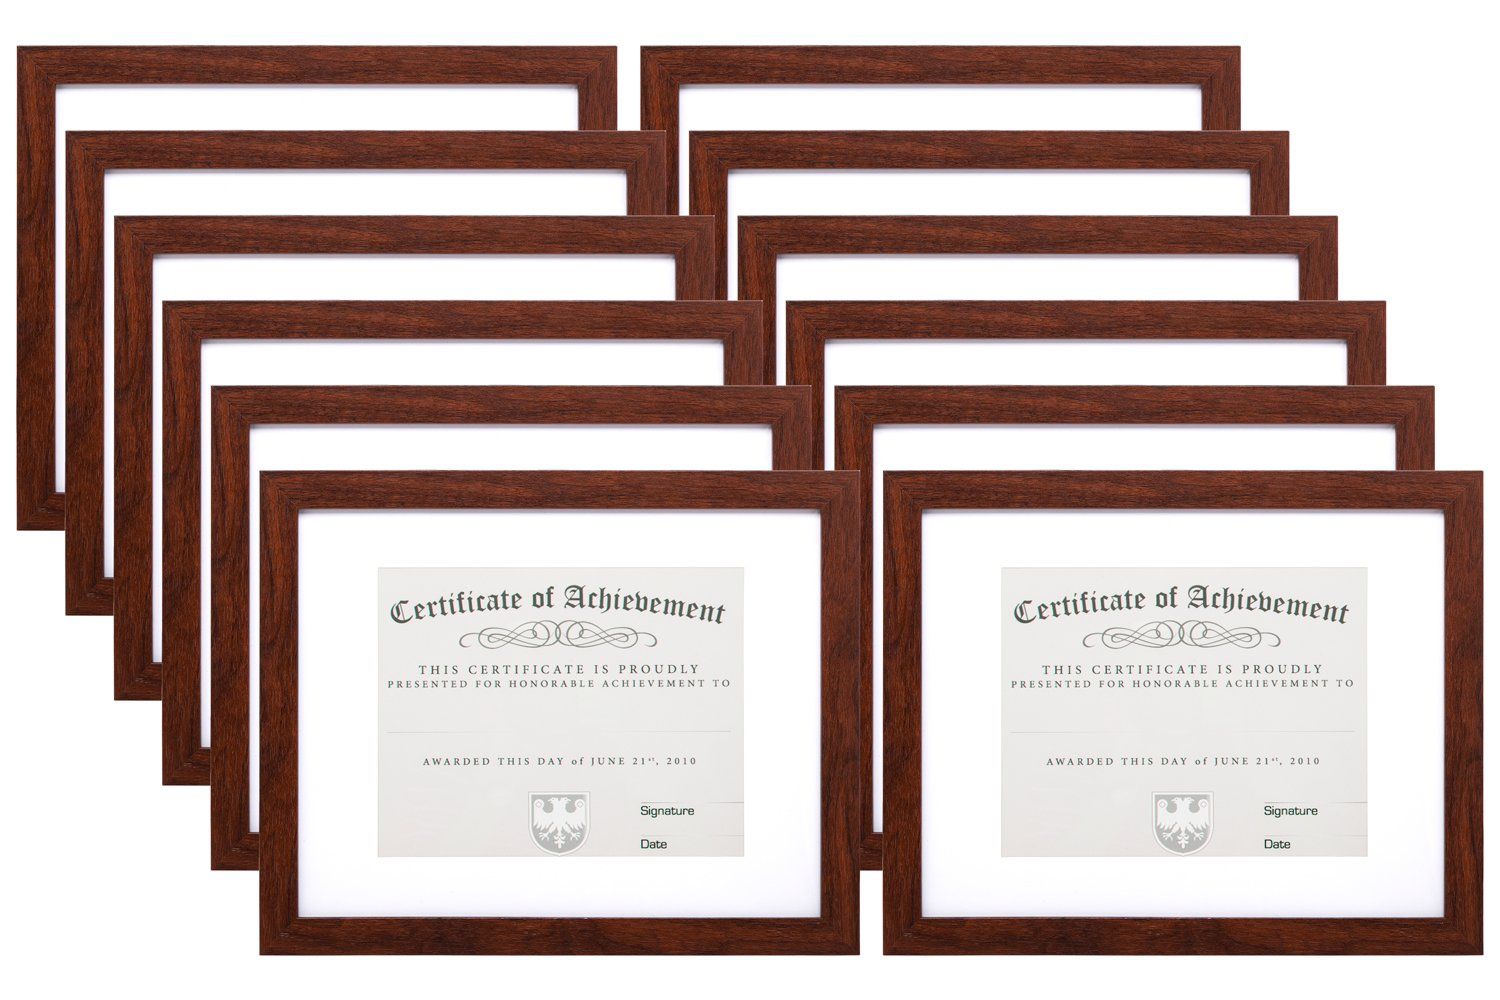 MeiC 12 Pack 11x14'' Wall Mounting Certificate Document Photo Frames 8.5x11 with Mat 11x14 without Mat Brown